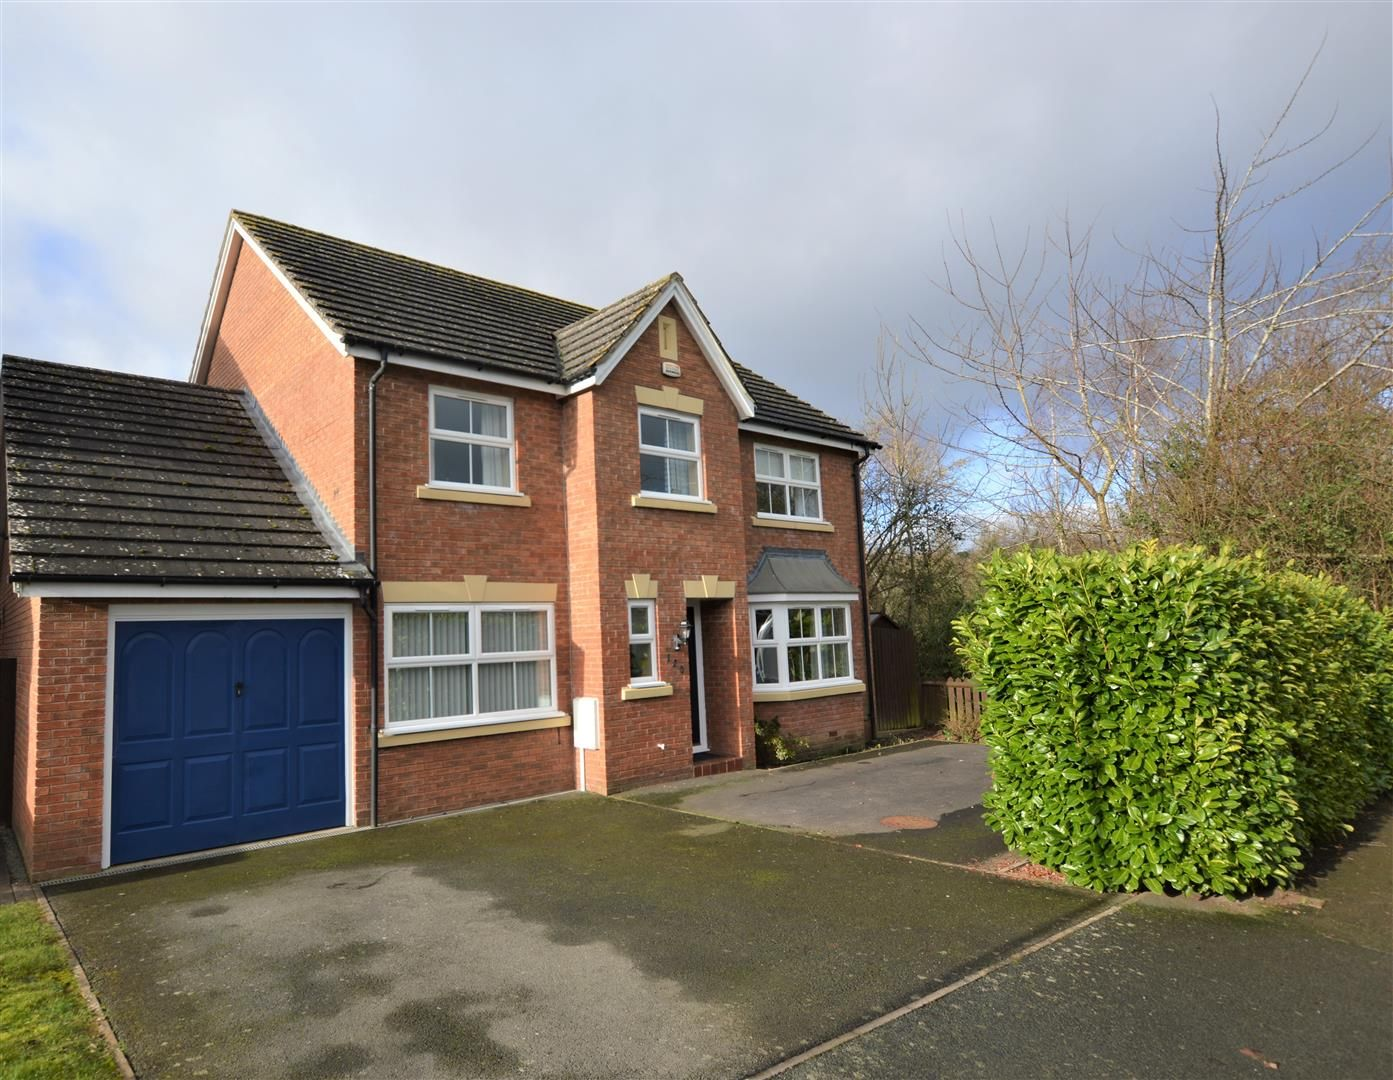 5 bed detached for sale in Leominster - Property Image 1